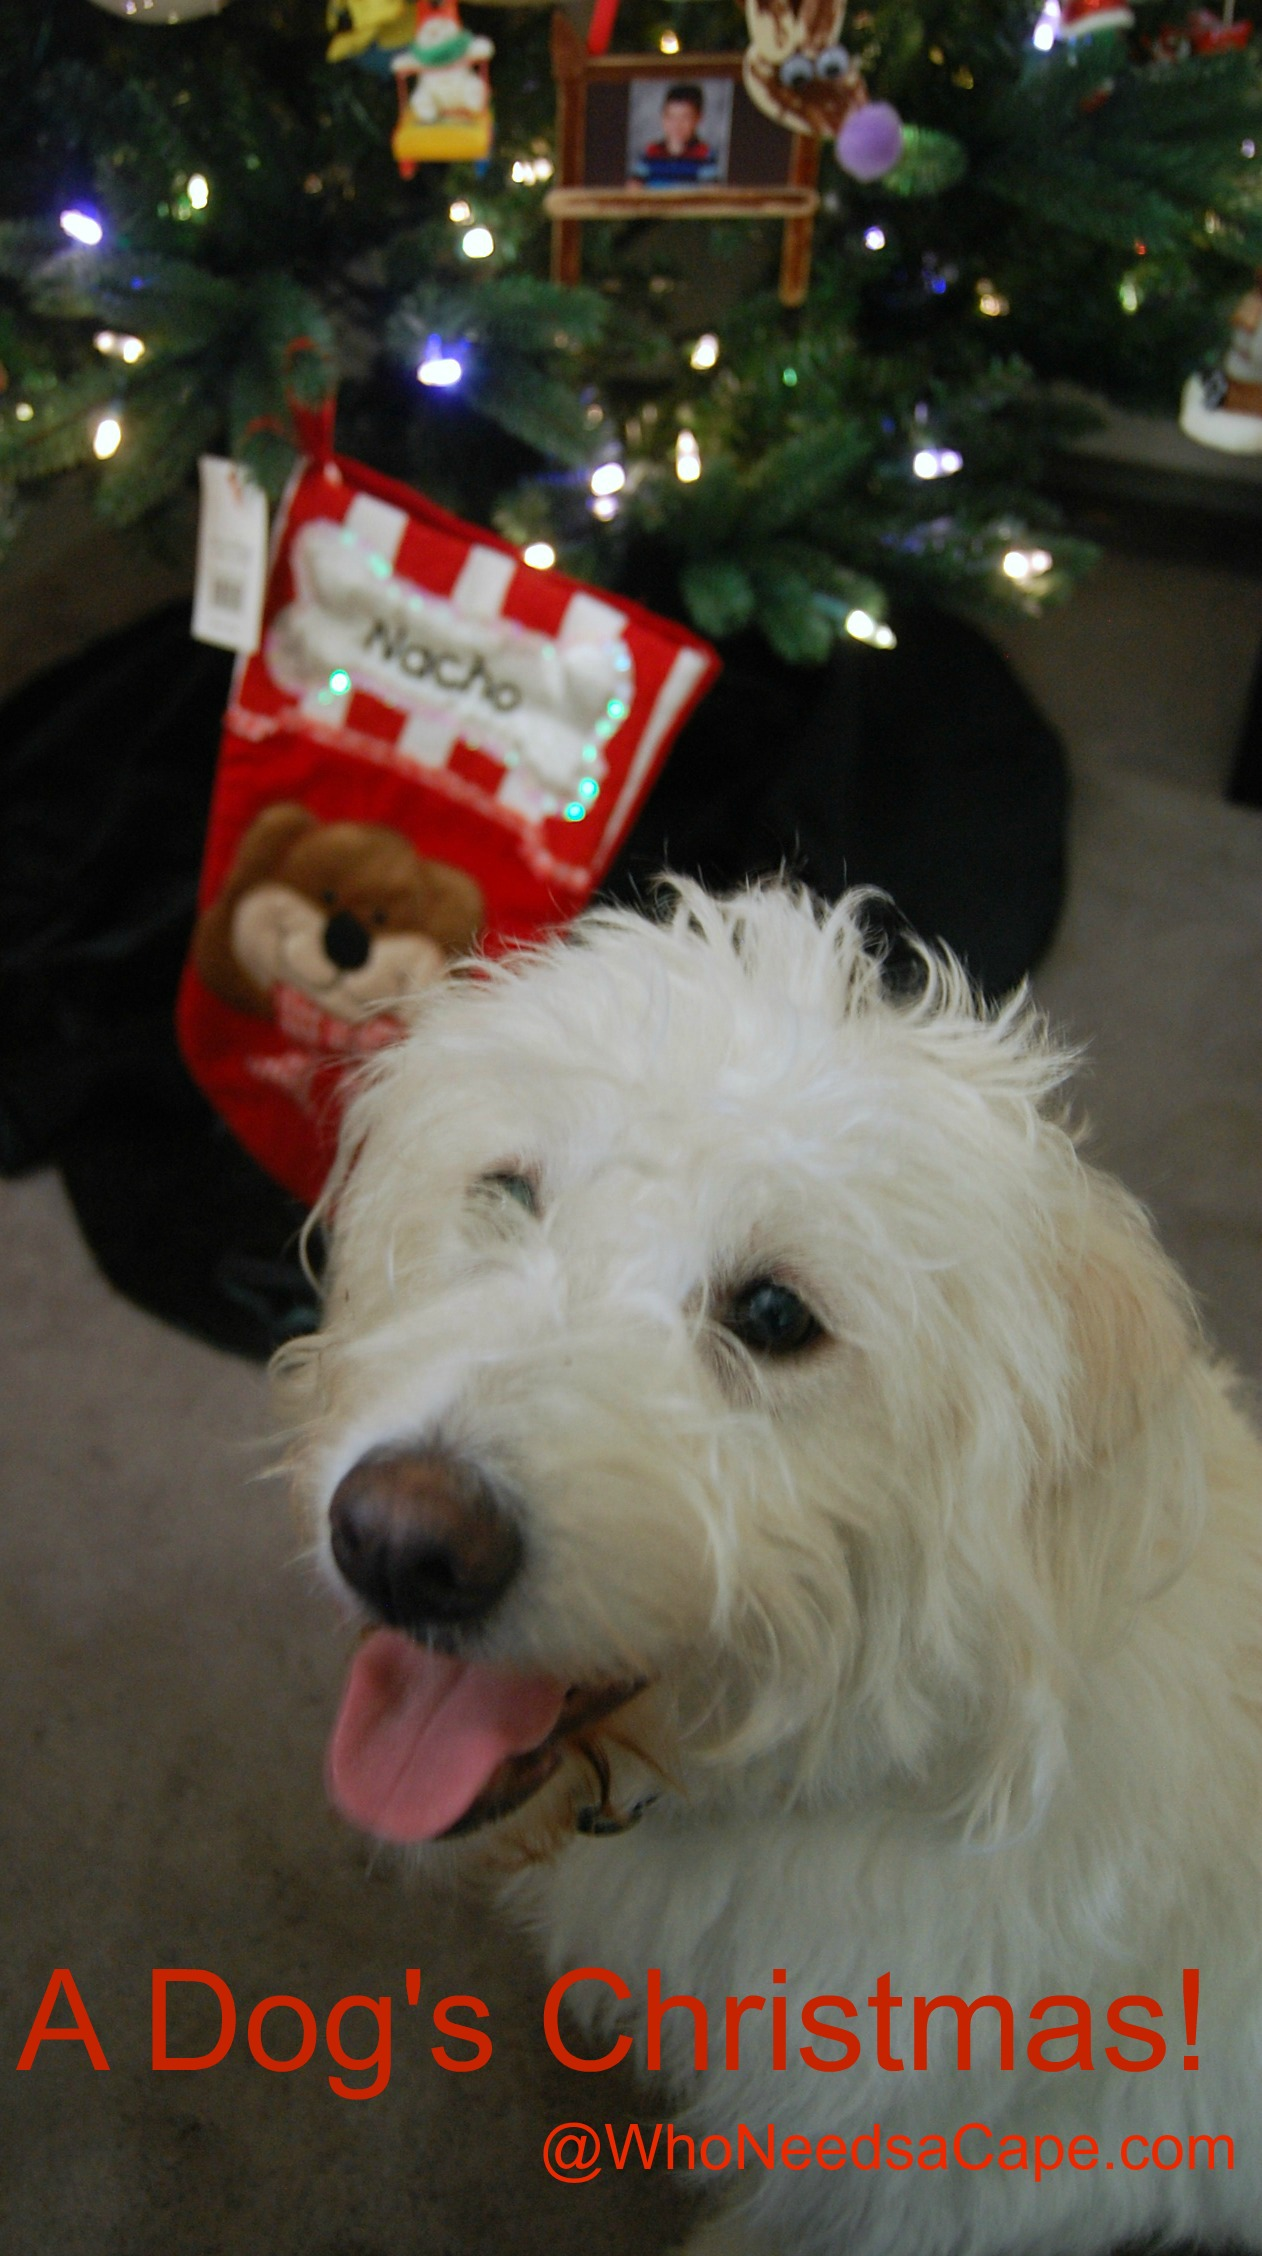 a-dogs-christmas-get-him-what-he-wants